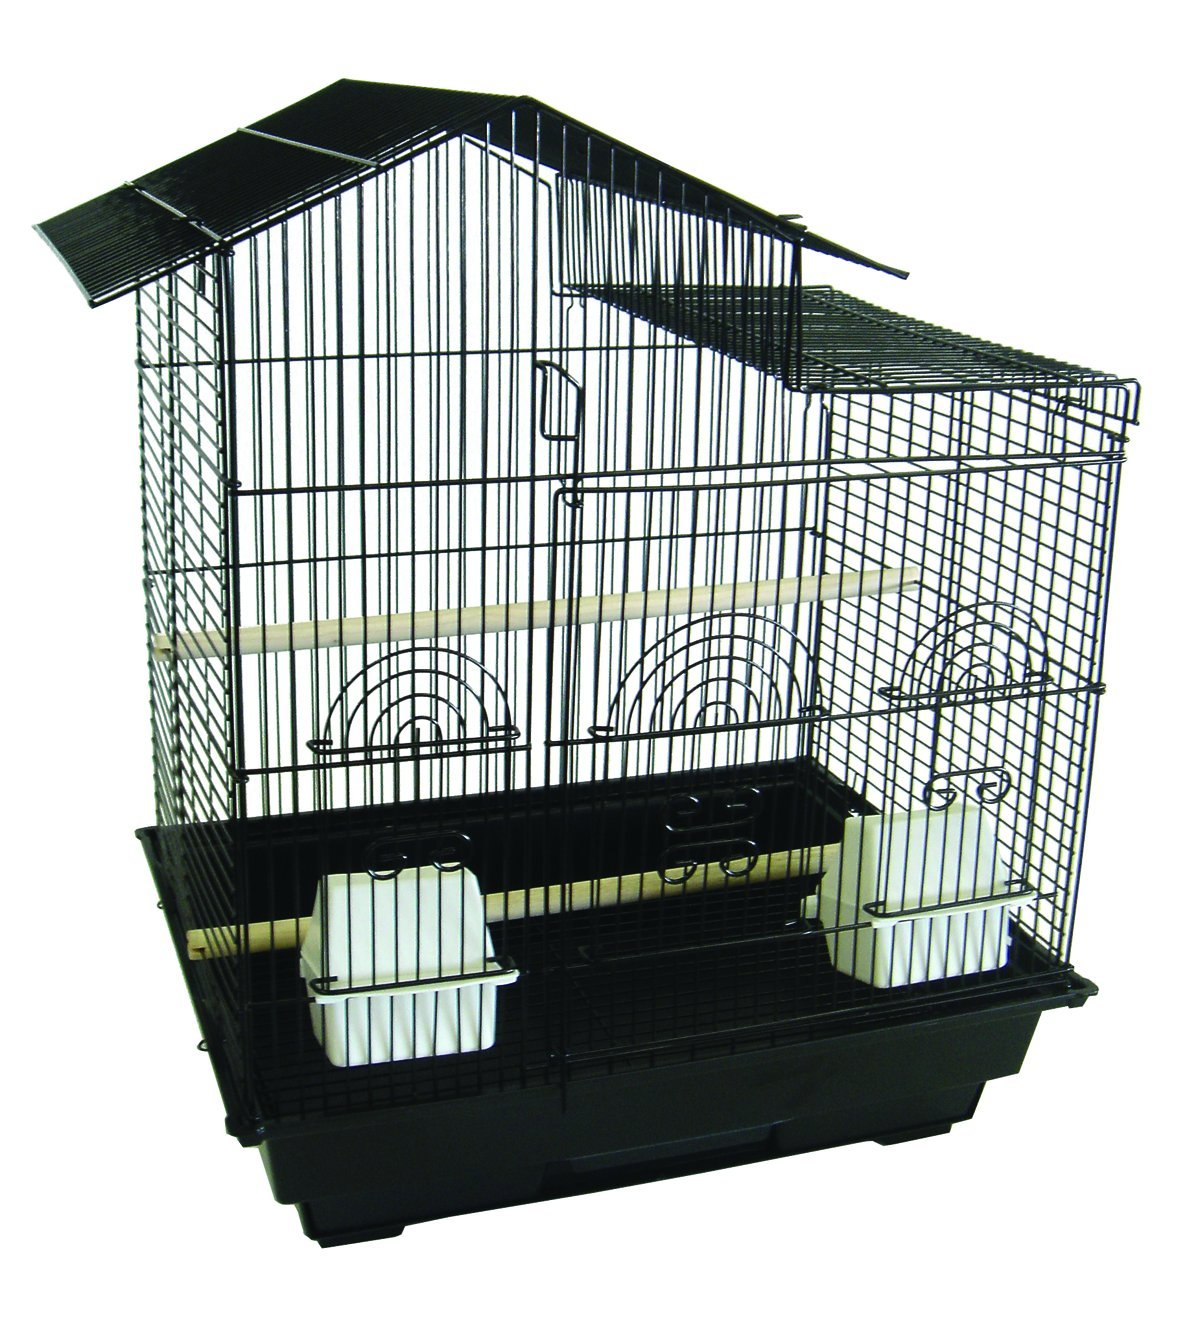 YML A5894 3/8-Inch Bar Spacing Villa Top Small Bird Cage, 18-Inch by 14-Inch, Black A5894BLK